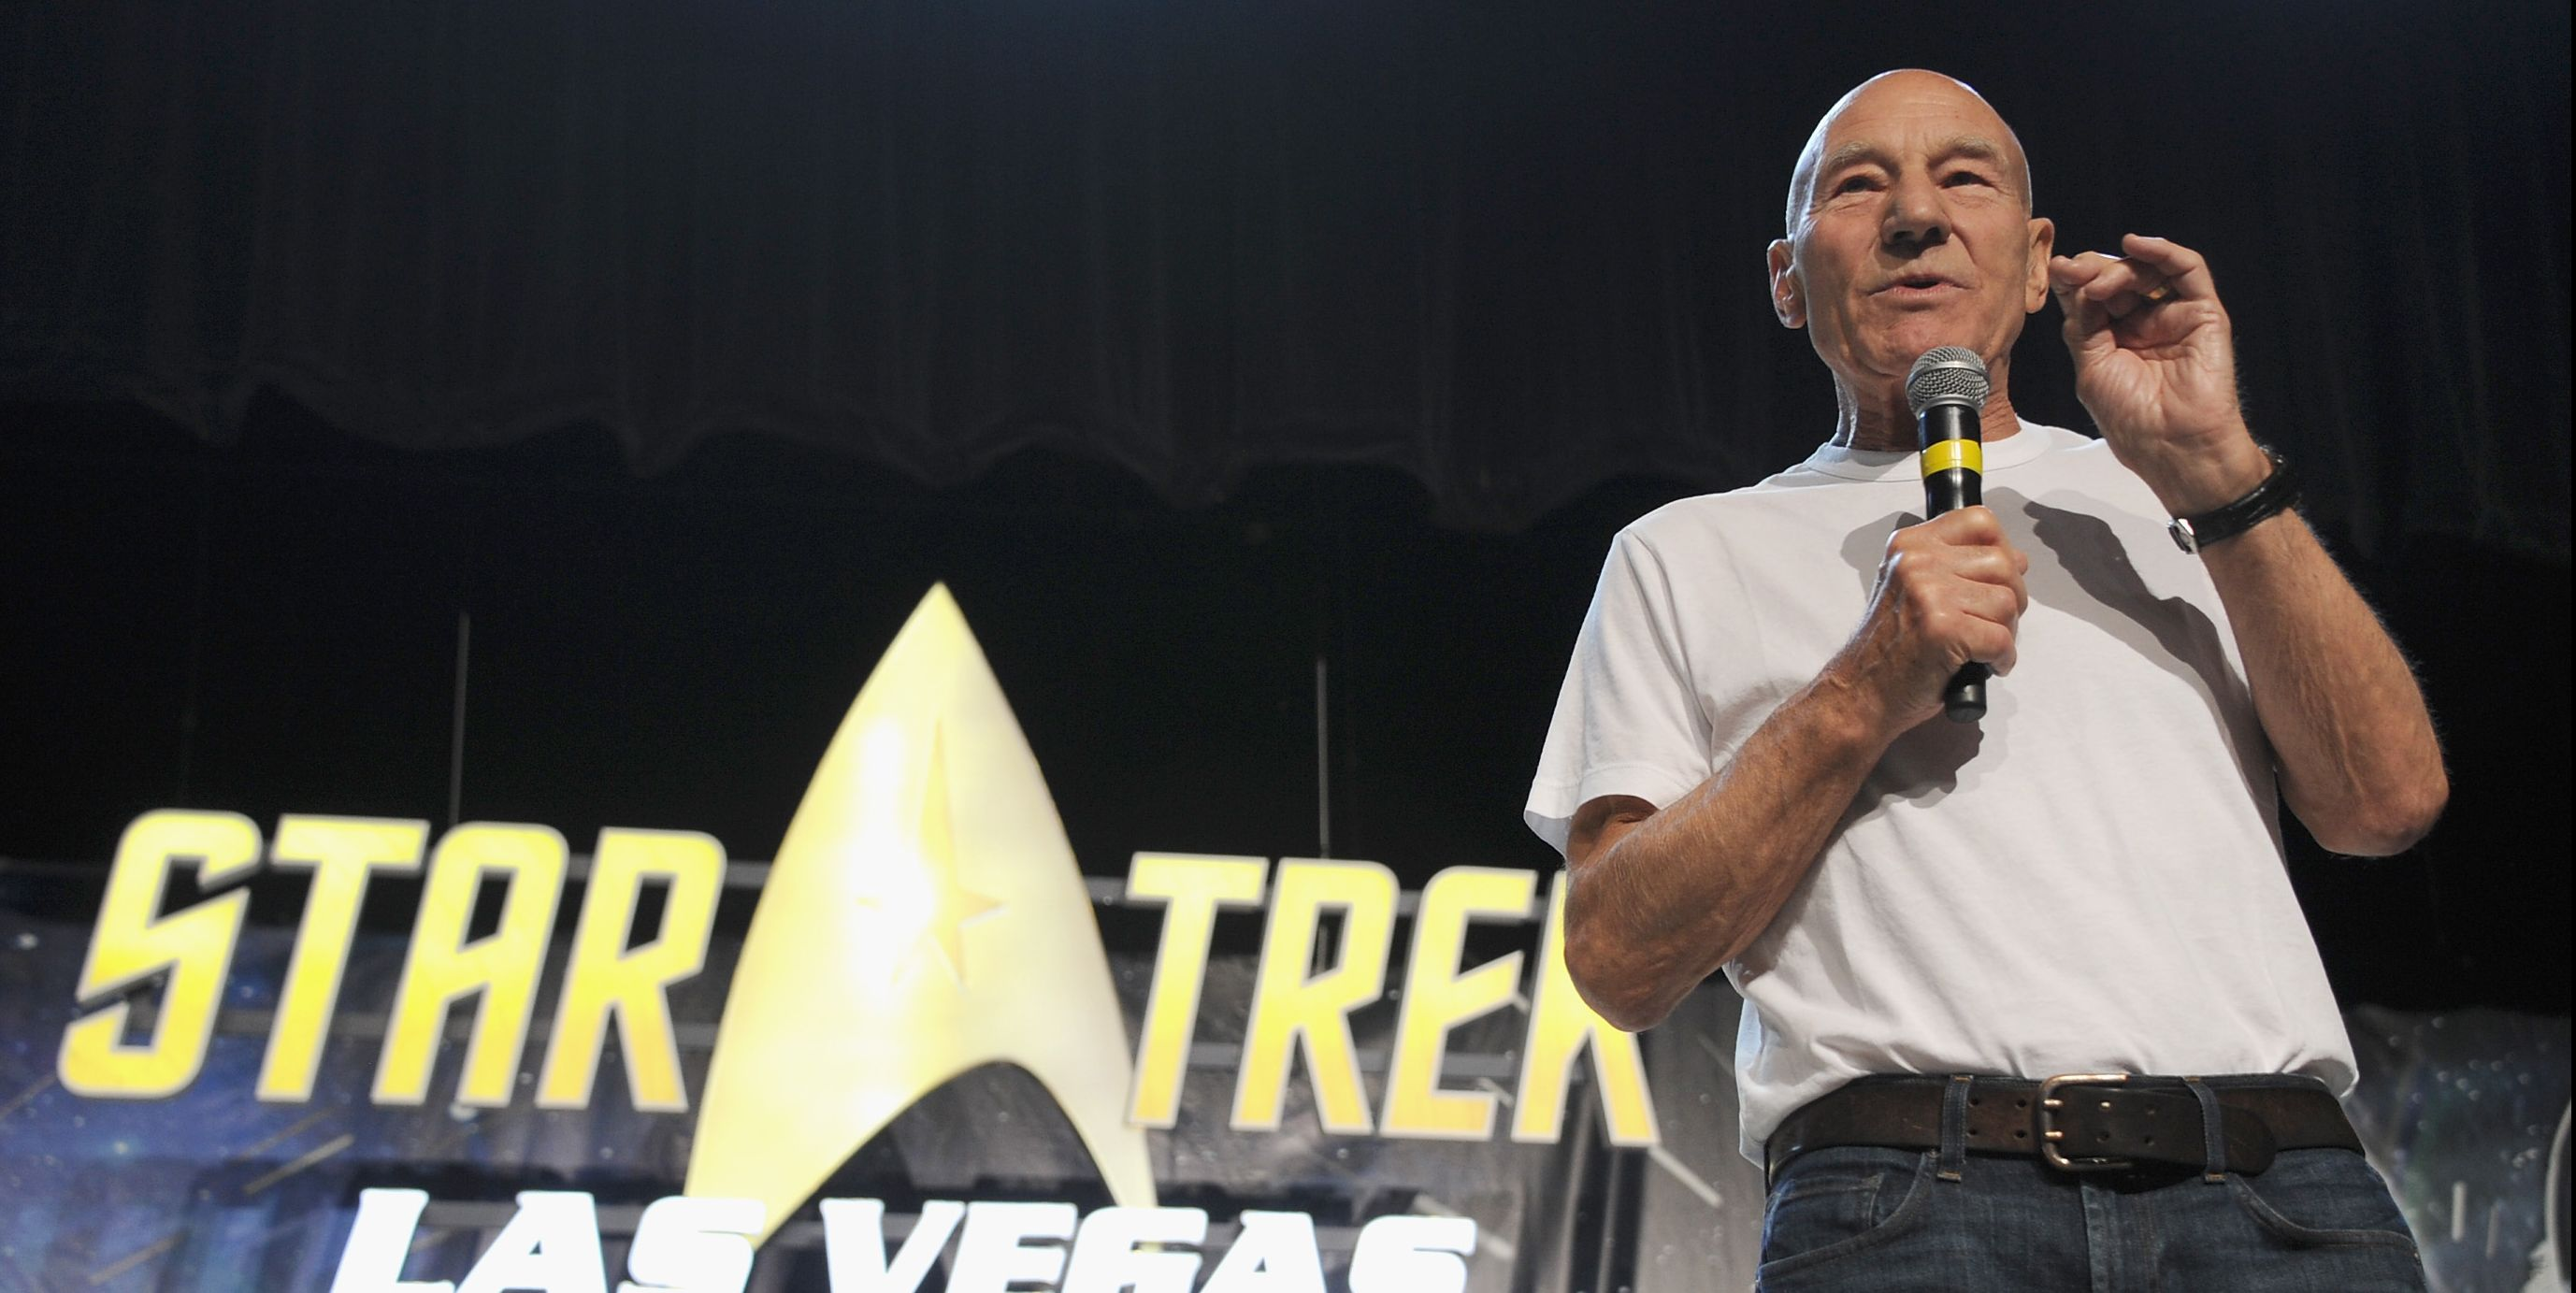 2018 Star Trek Convention Las Vegas